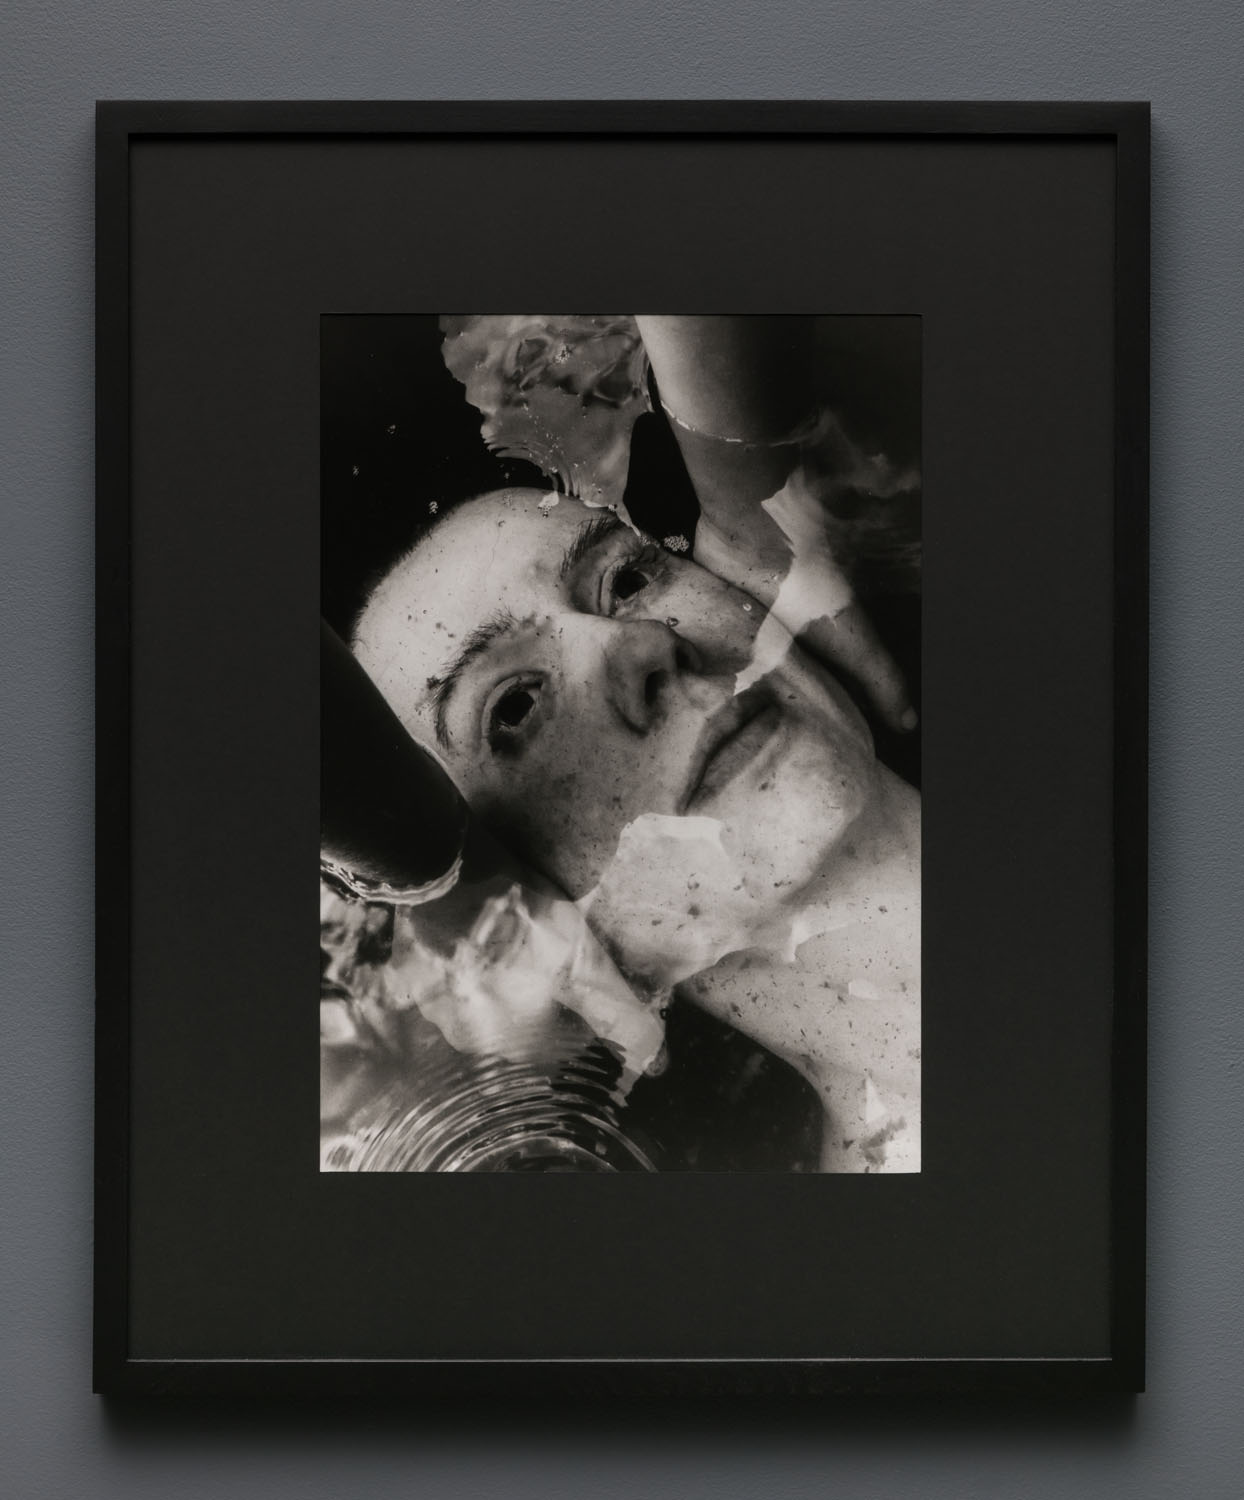 Aneta Grzeszykowska   Mama #47 , 2018  Silver gelatin print  Hand printed by the Artist  19.625 x 14.145 inches  29.5 x 24 inches (framed)  Edition of 5 + I A.P.